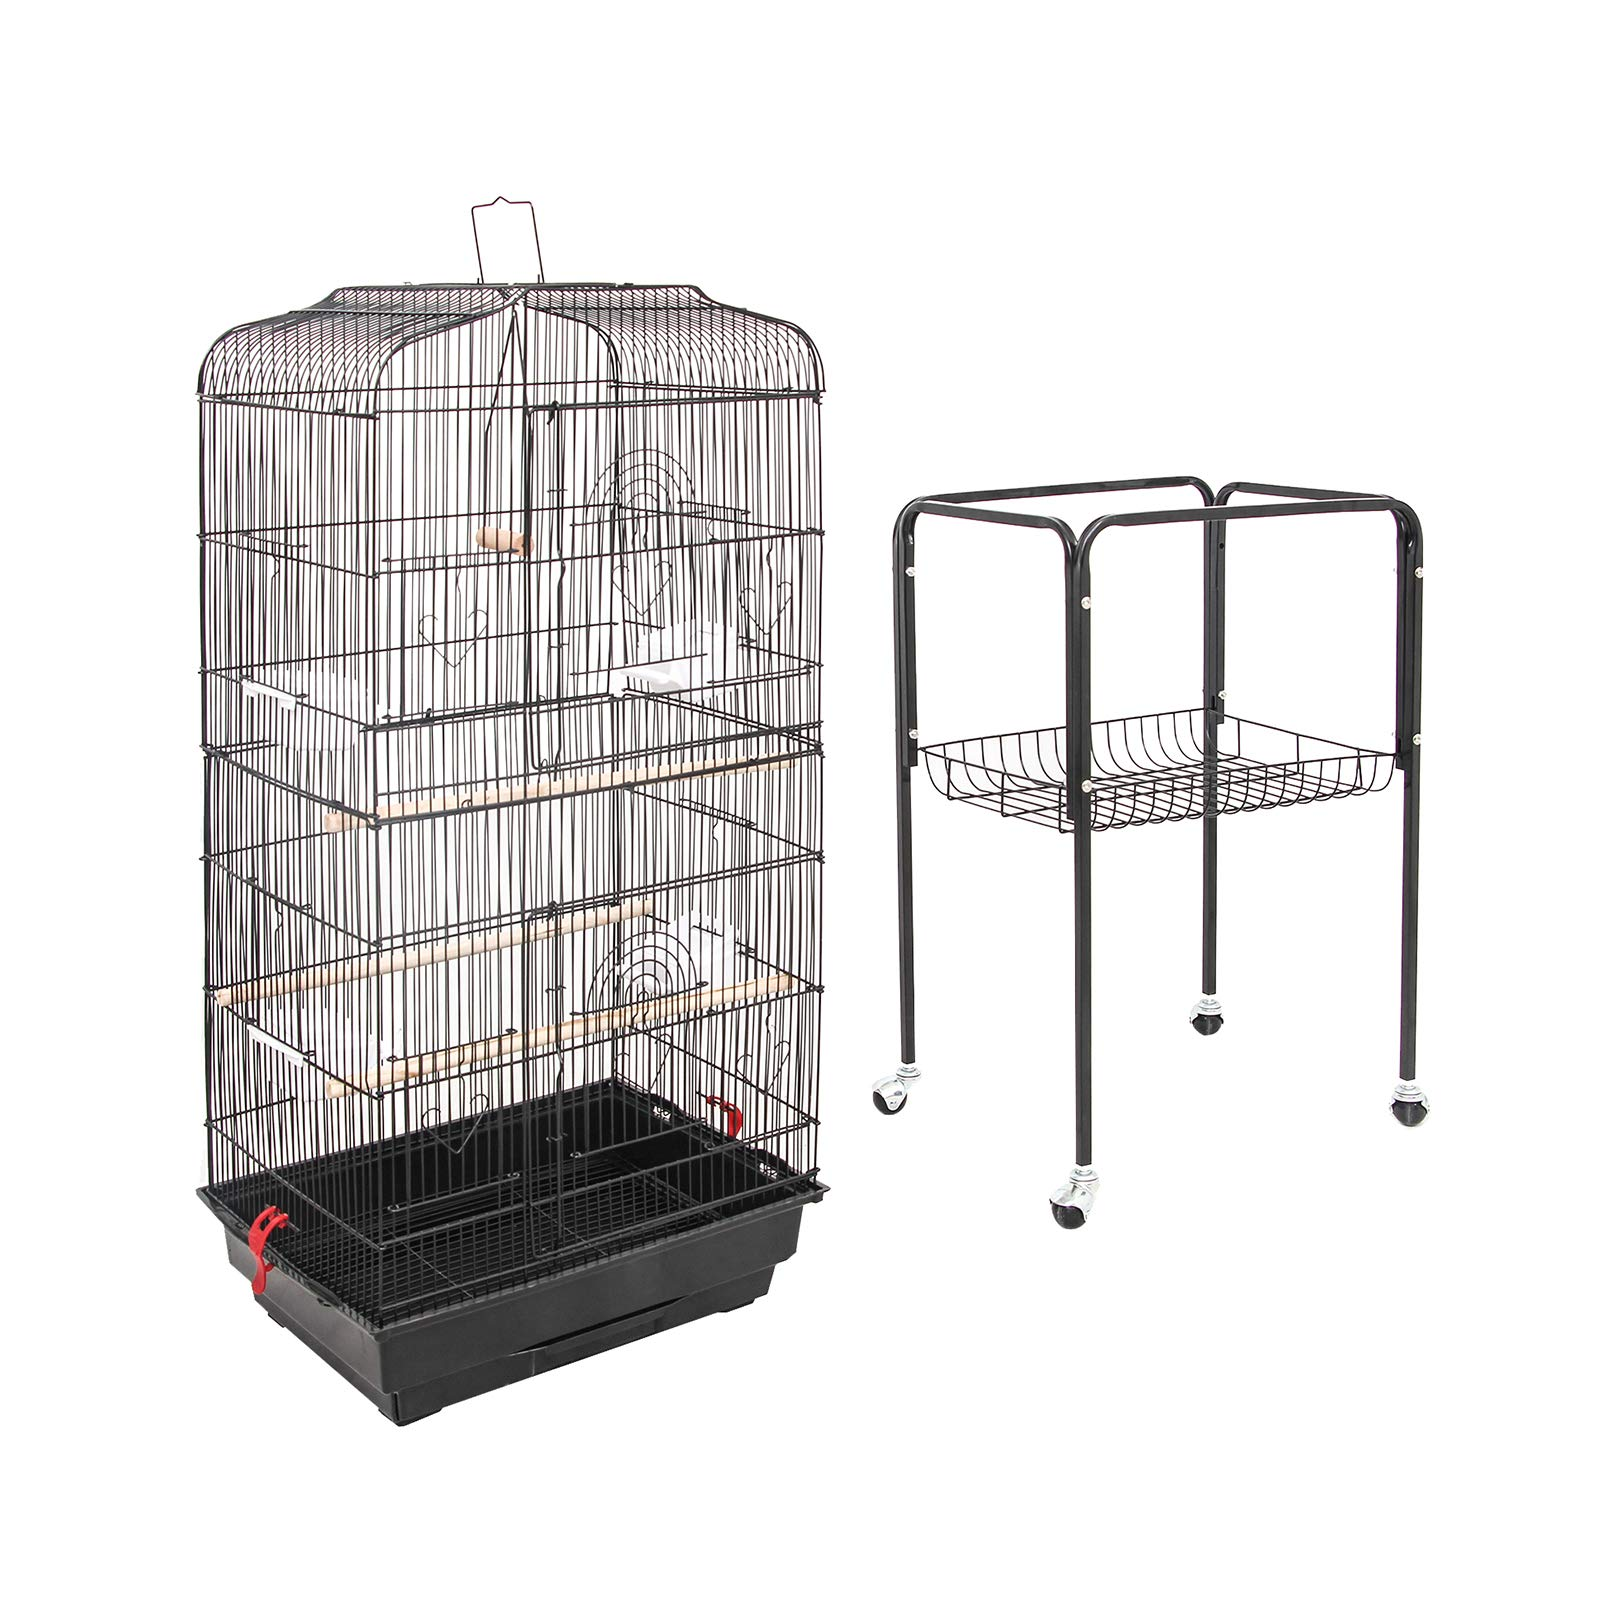 """SUNCOO Large Bird Cage for Parrot Budgie Parakeet Cockatoo Cocatiel Iron Bird Aviary with Stand Pet Supply Black (60 """"H)"""